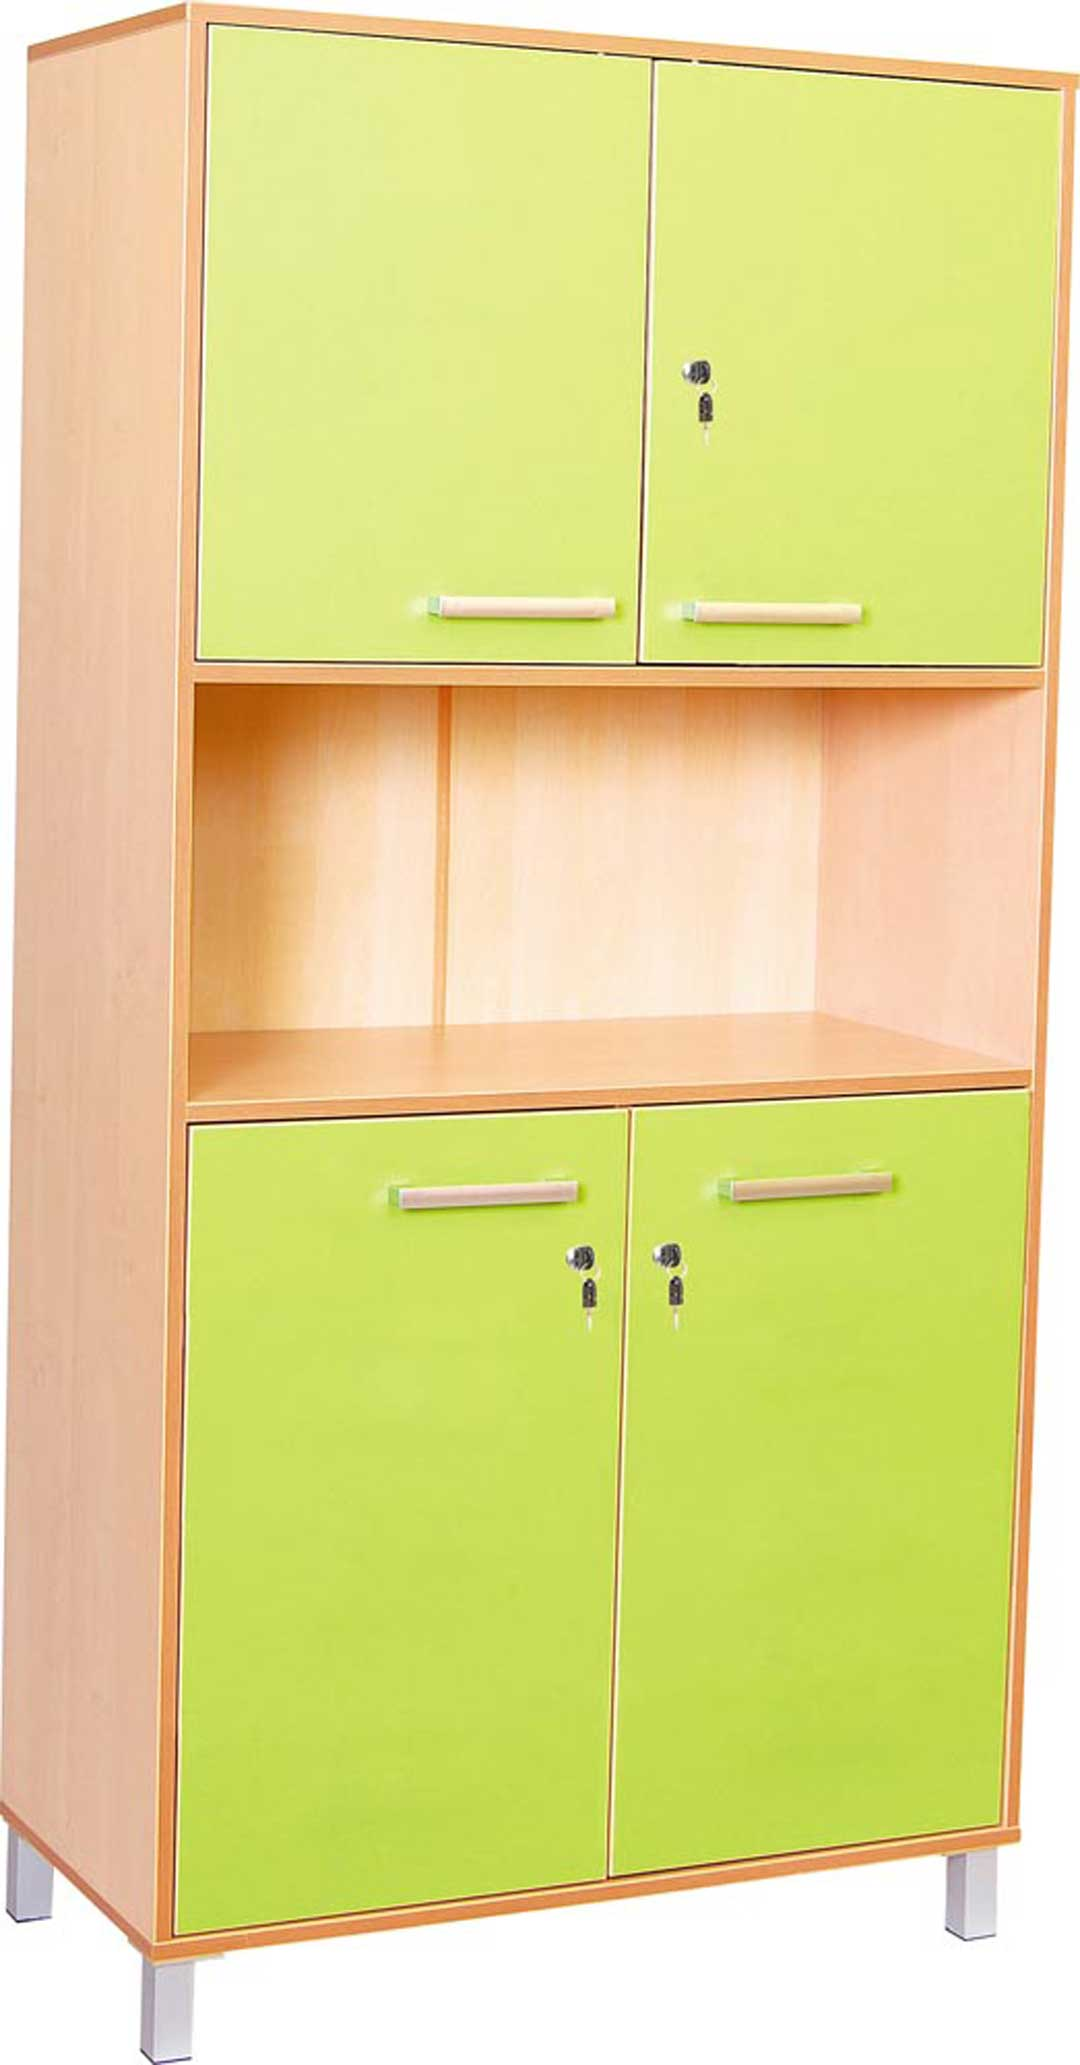 Classic High Cabinet with doors and locks - Green Doors